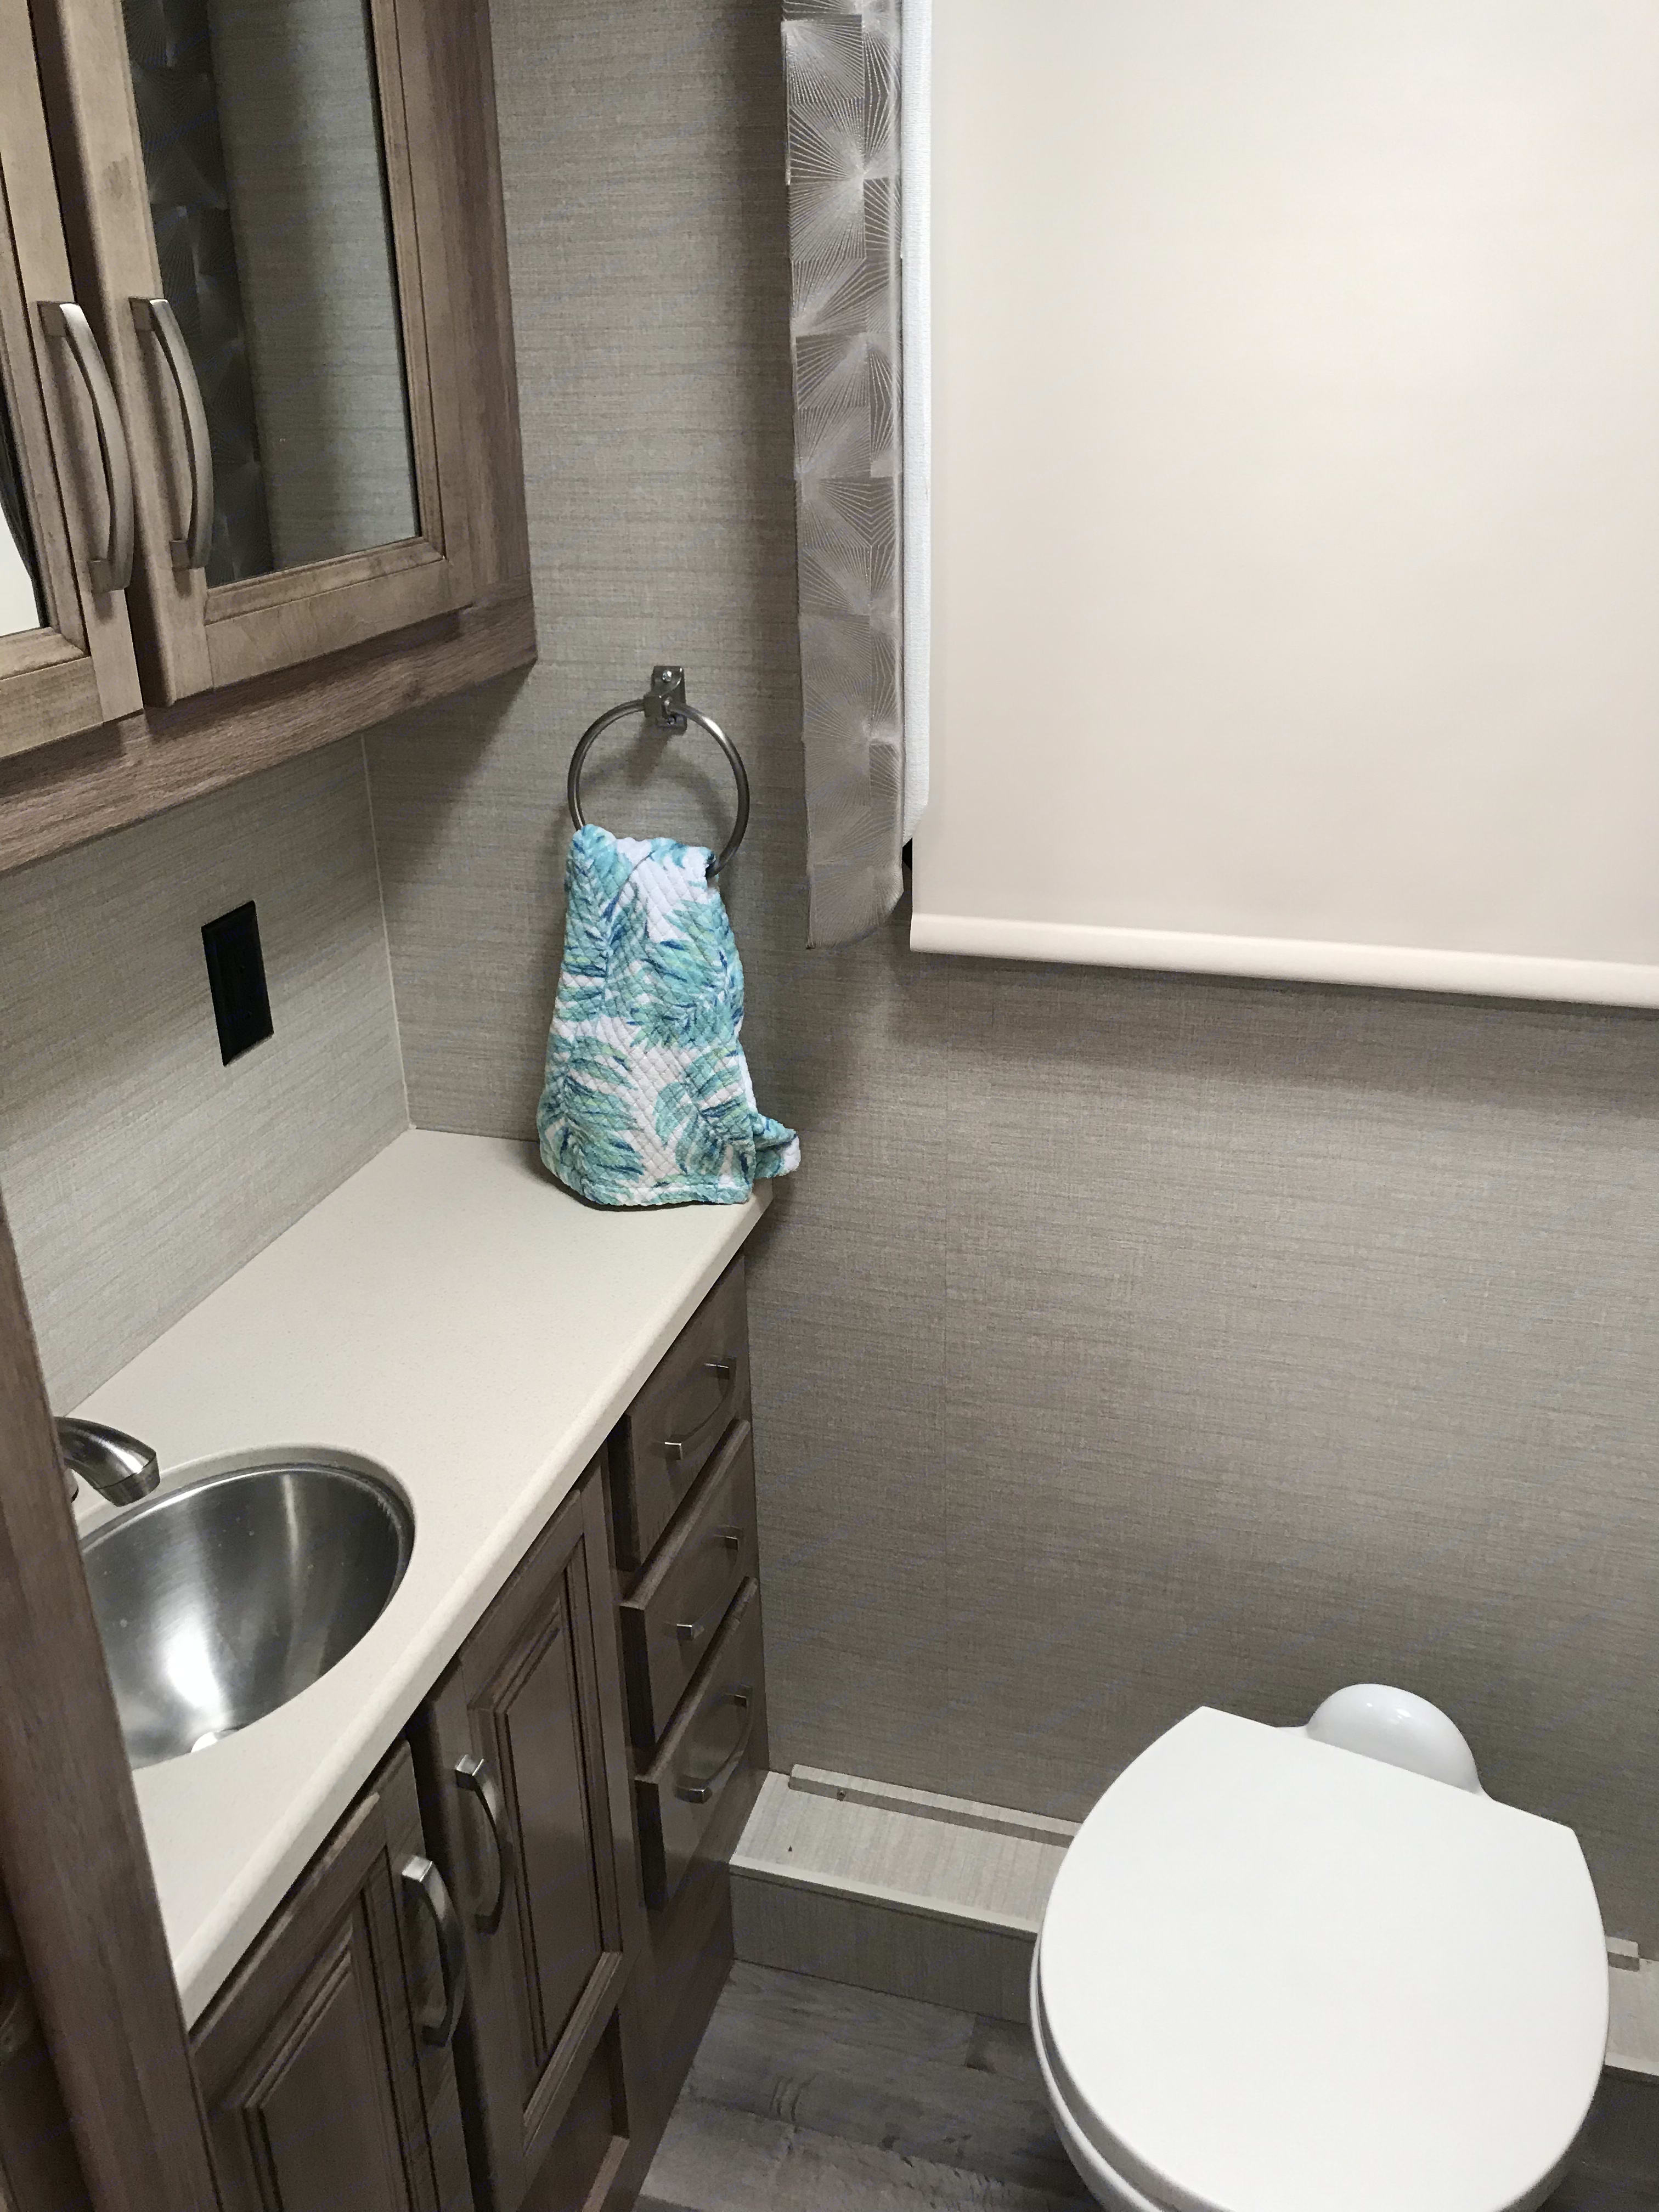 Separate spacious bathroom area with sizable counter, cabinets, storage, etc. . Jayco Precept 2020